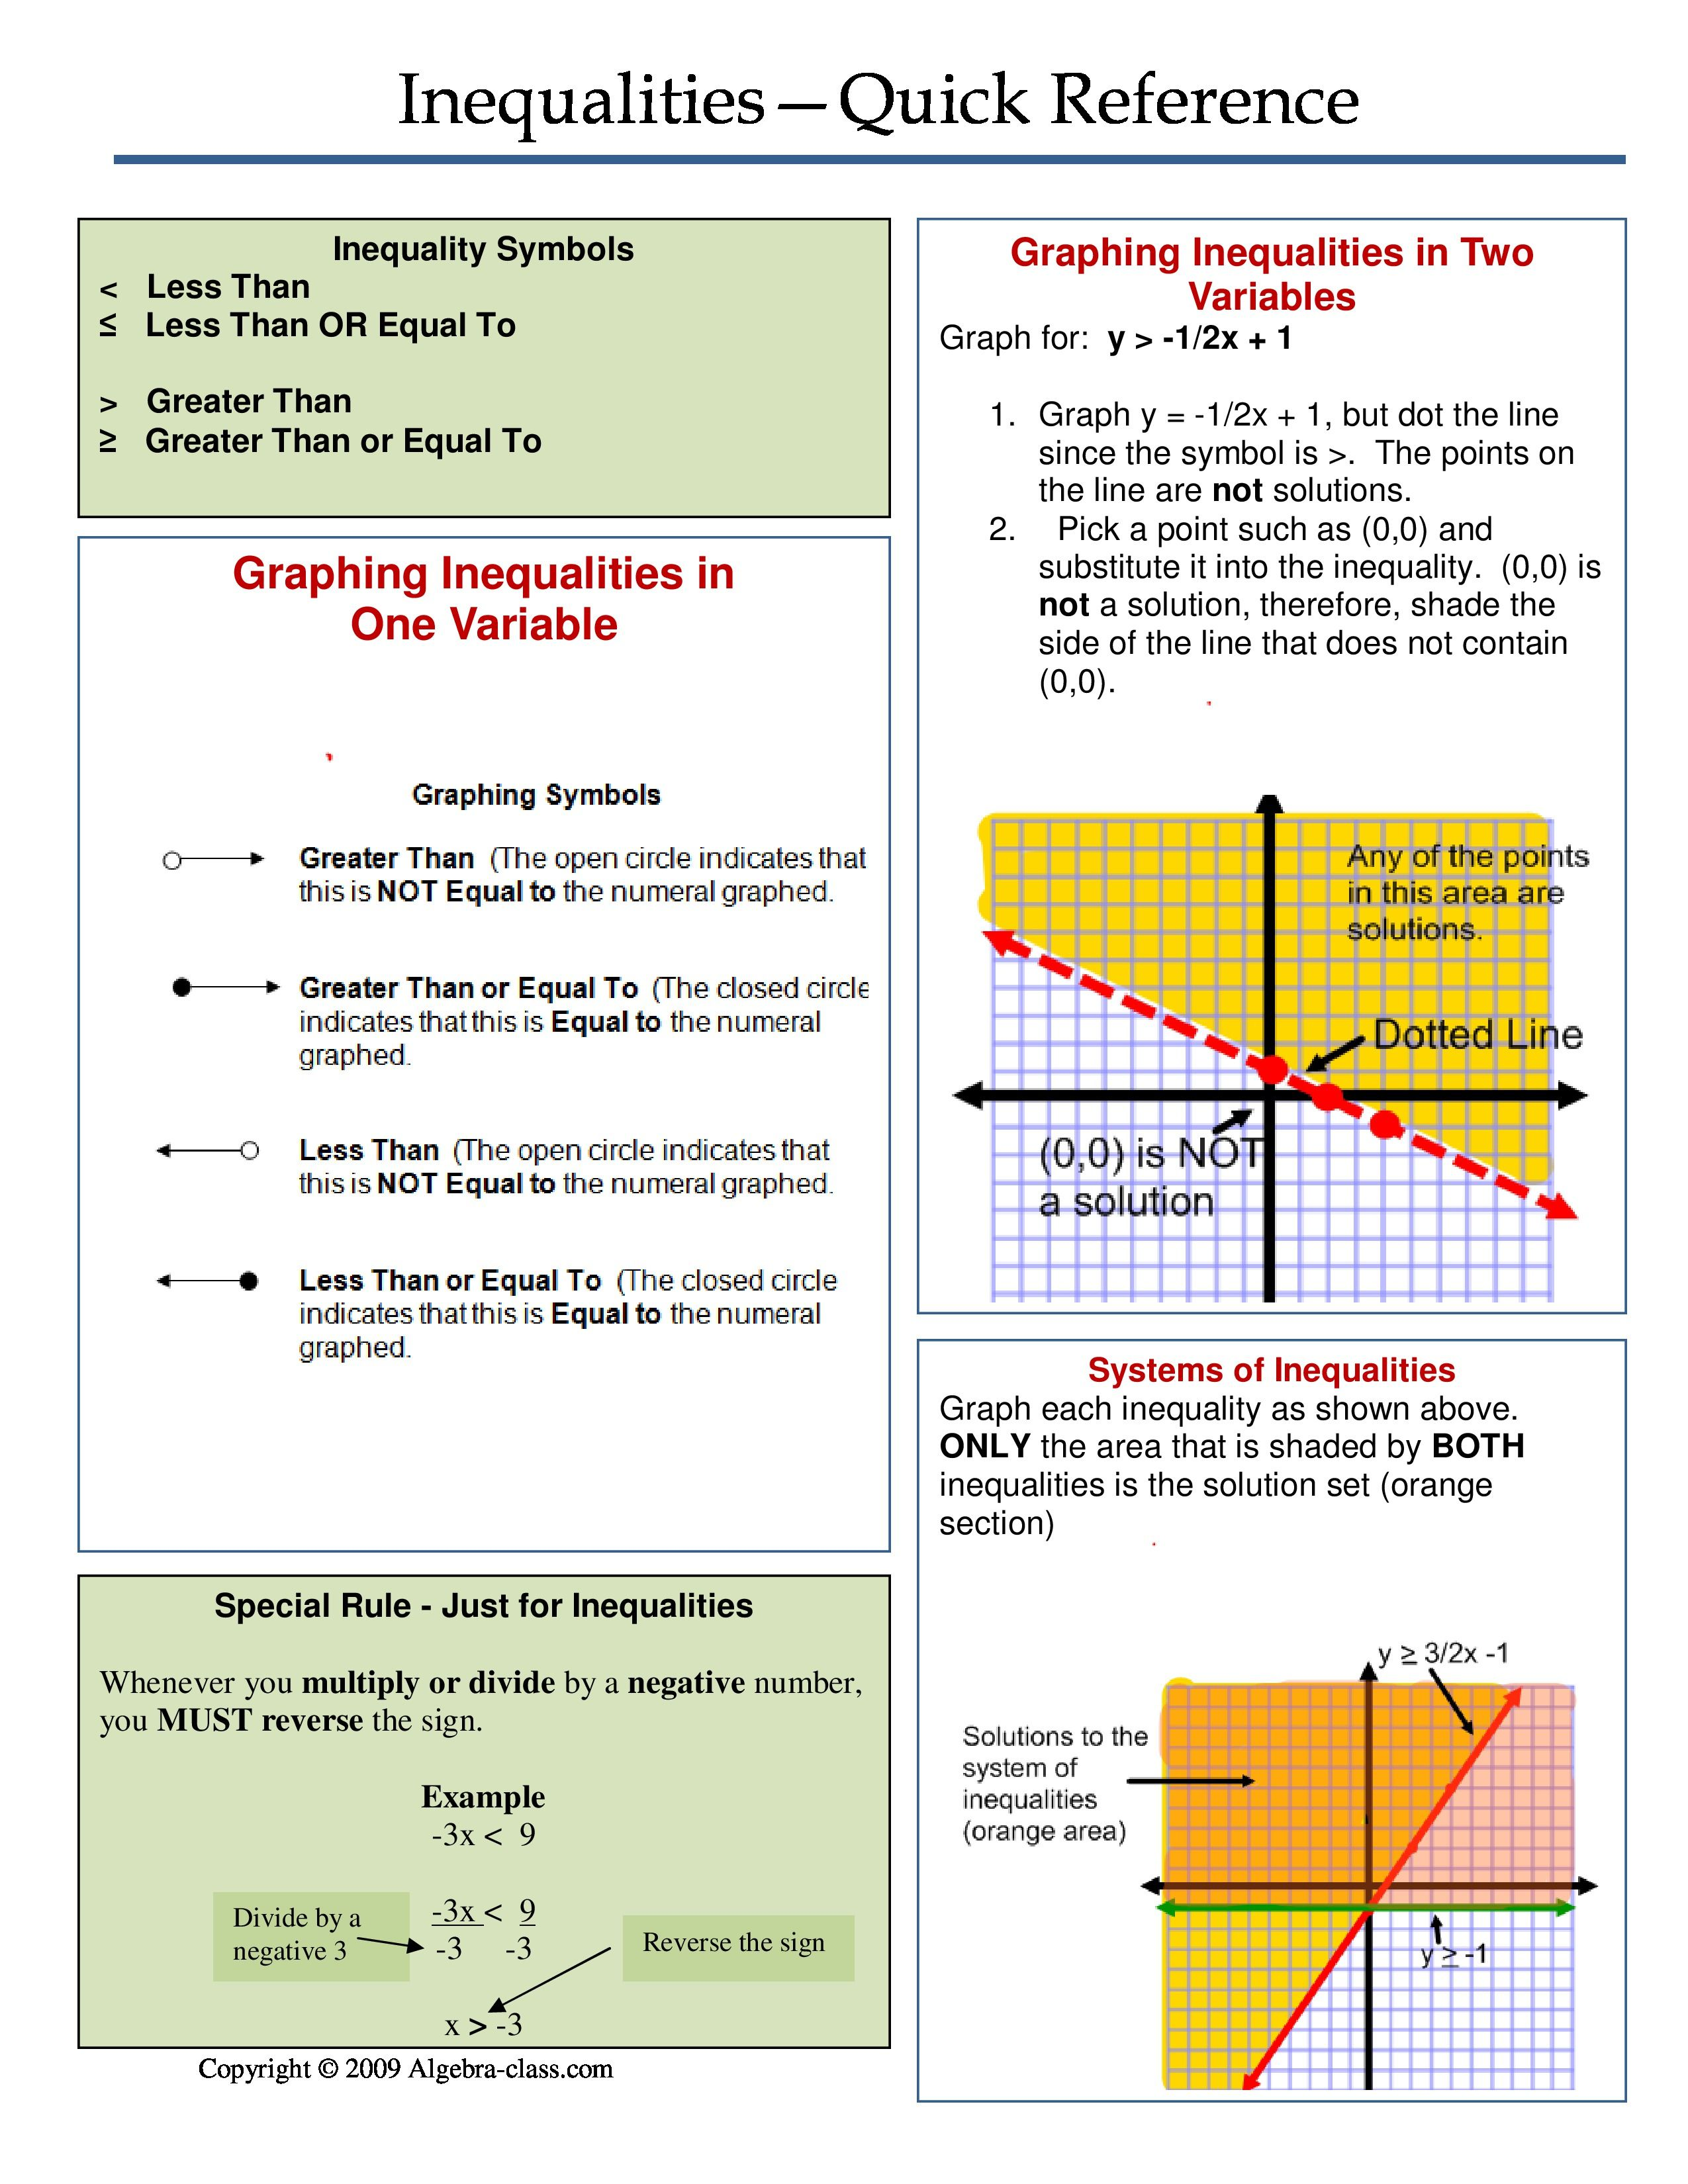 One Page Notes Worksheet For Inequalities Unit I Like The Inclusiveness Of The Notes Maybe Use This As A P Graphing Inequalities Math Notebooks Learning Math